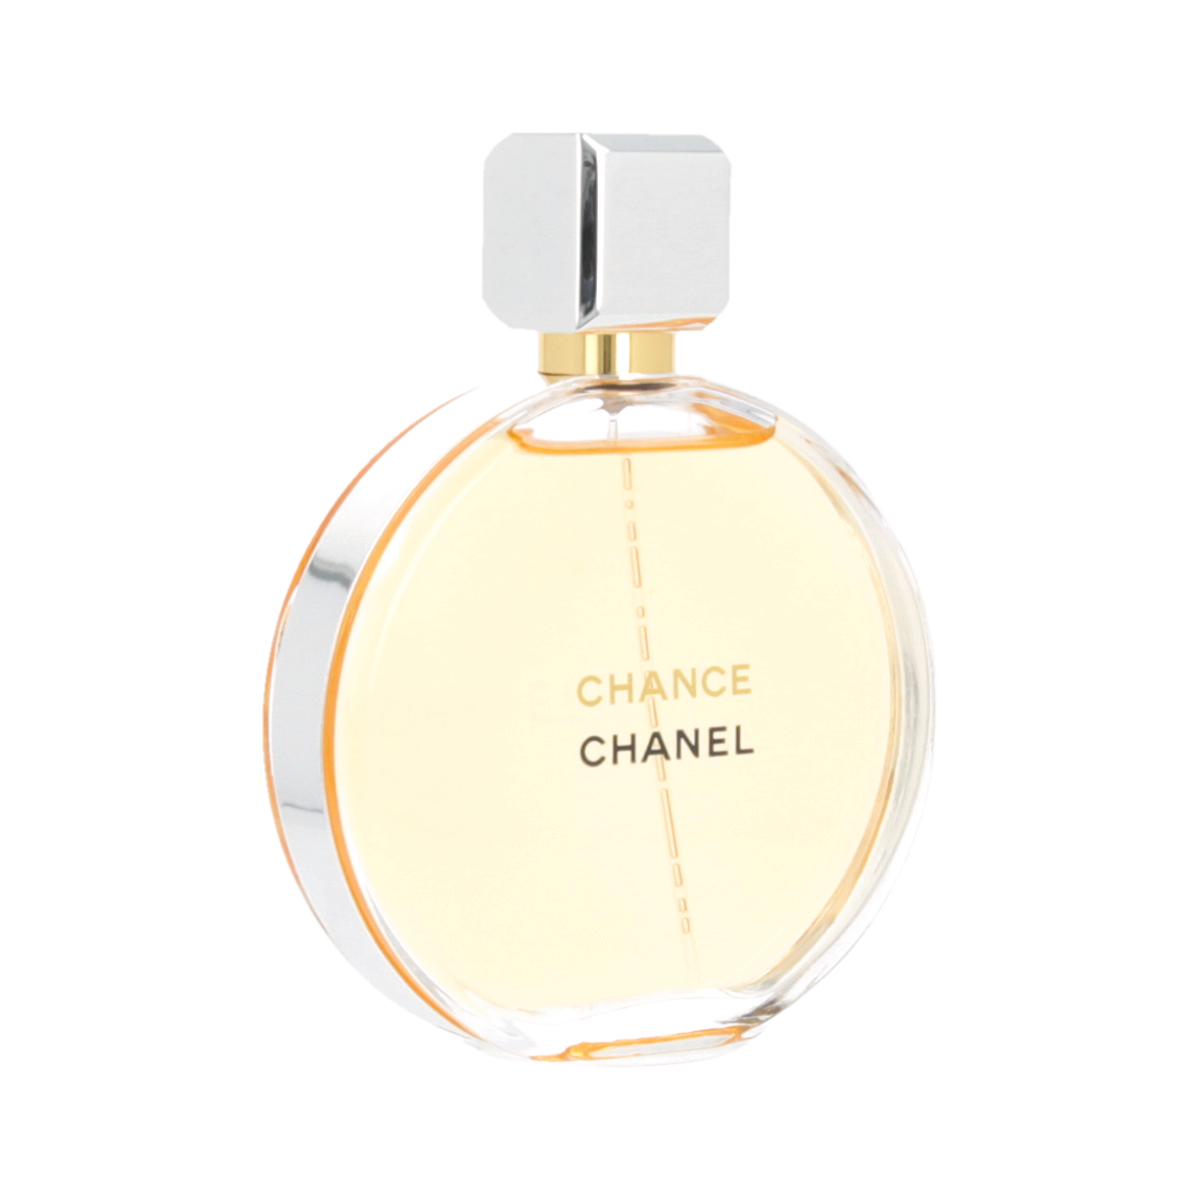 Chanel Chance Eau De Parfum 100 ml (woman) 37047